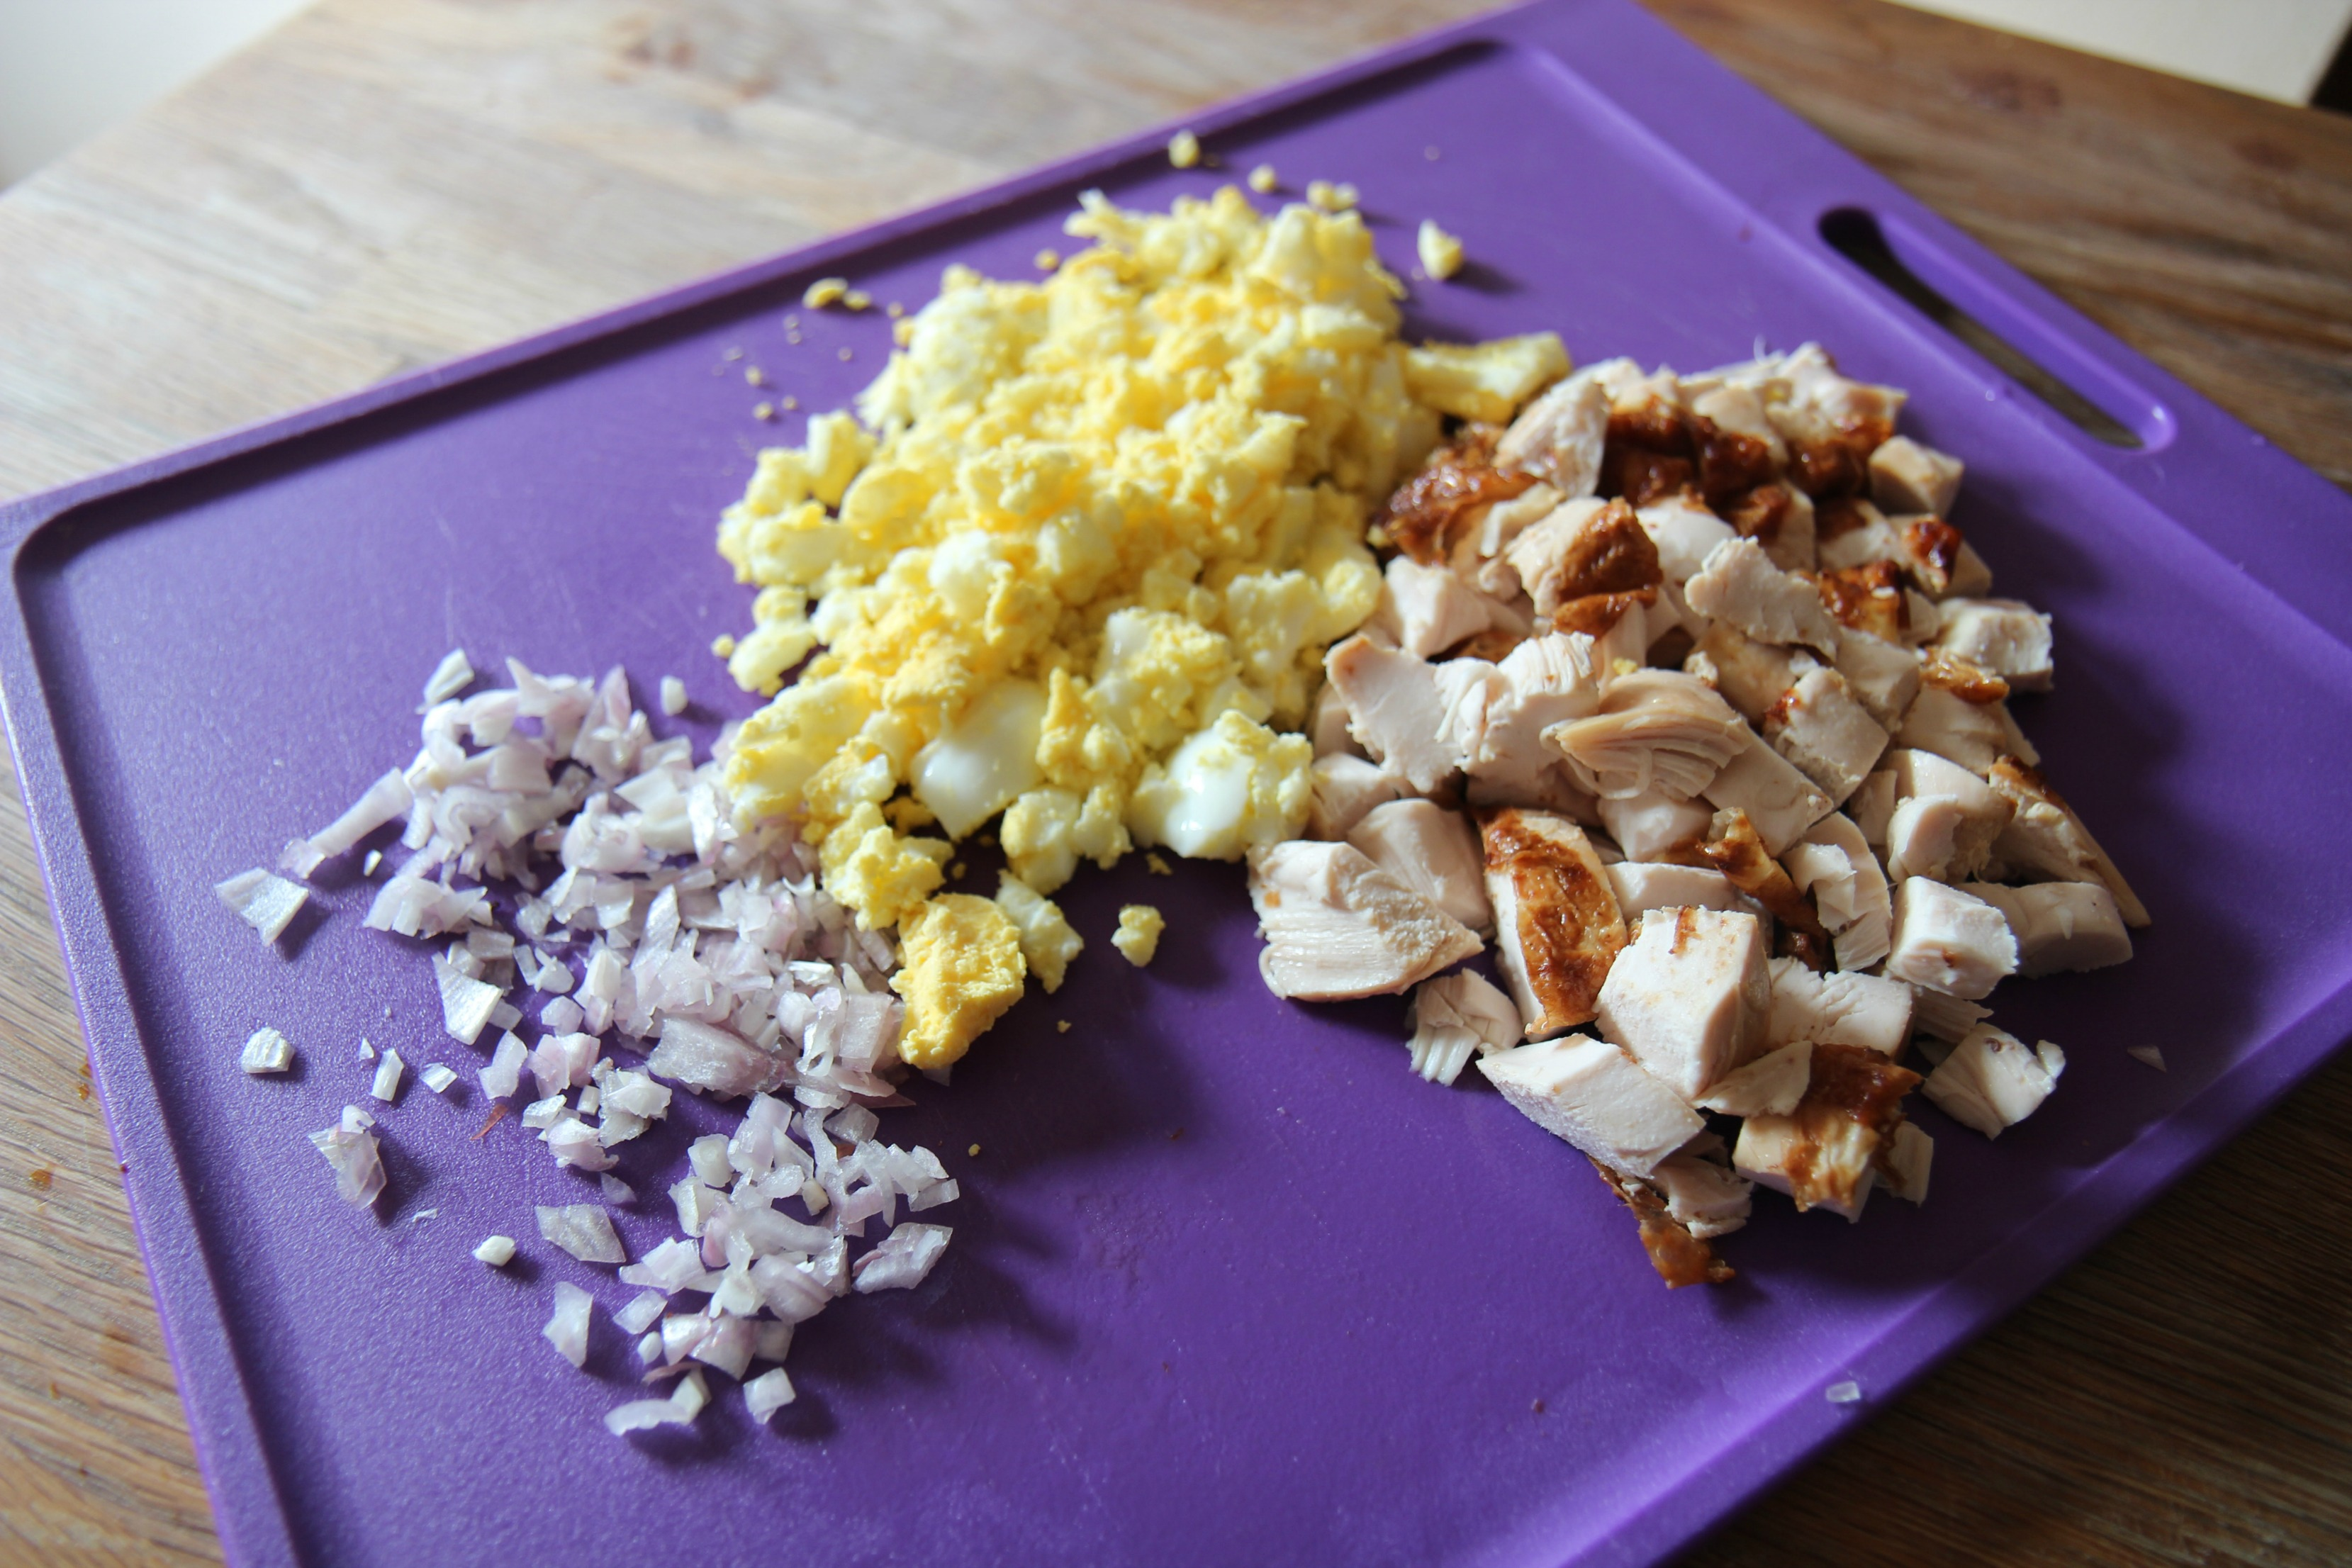 Onions, Eggs, and Chicken for the salad